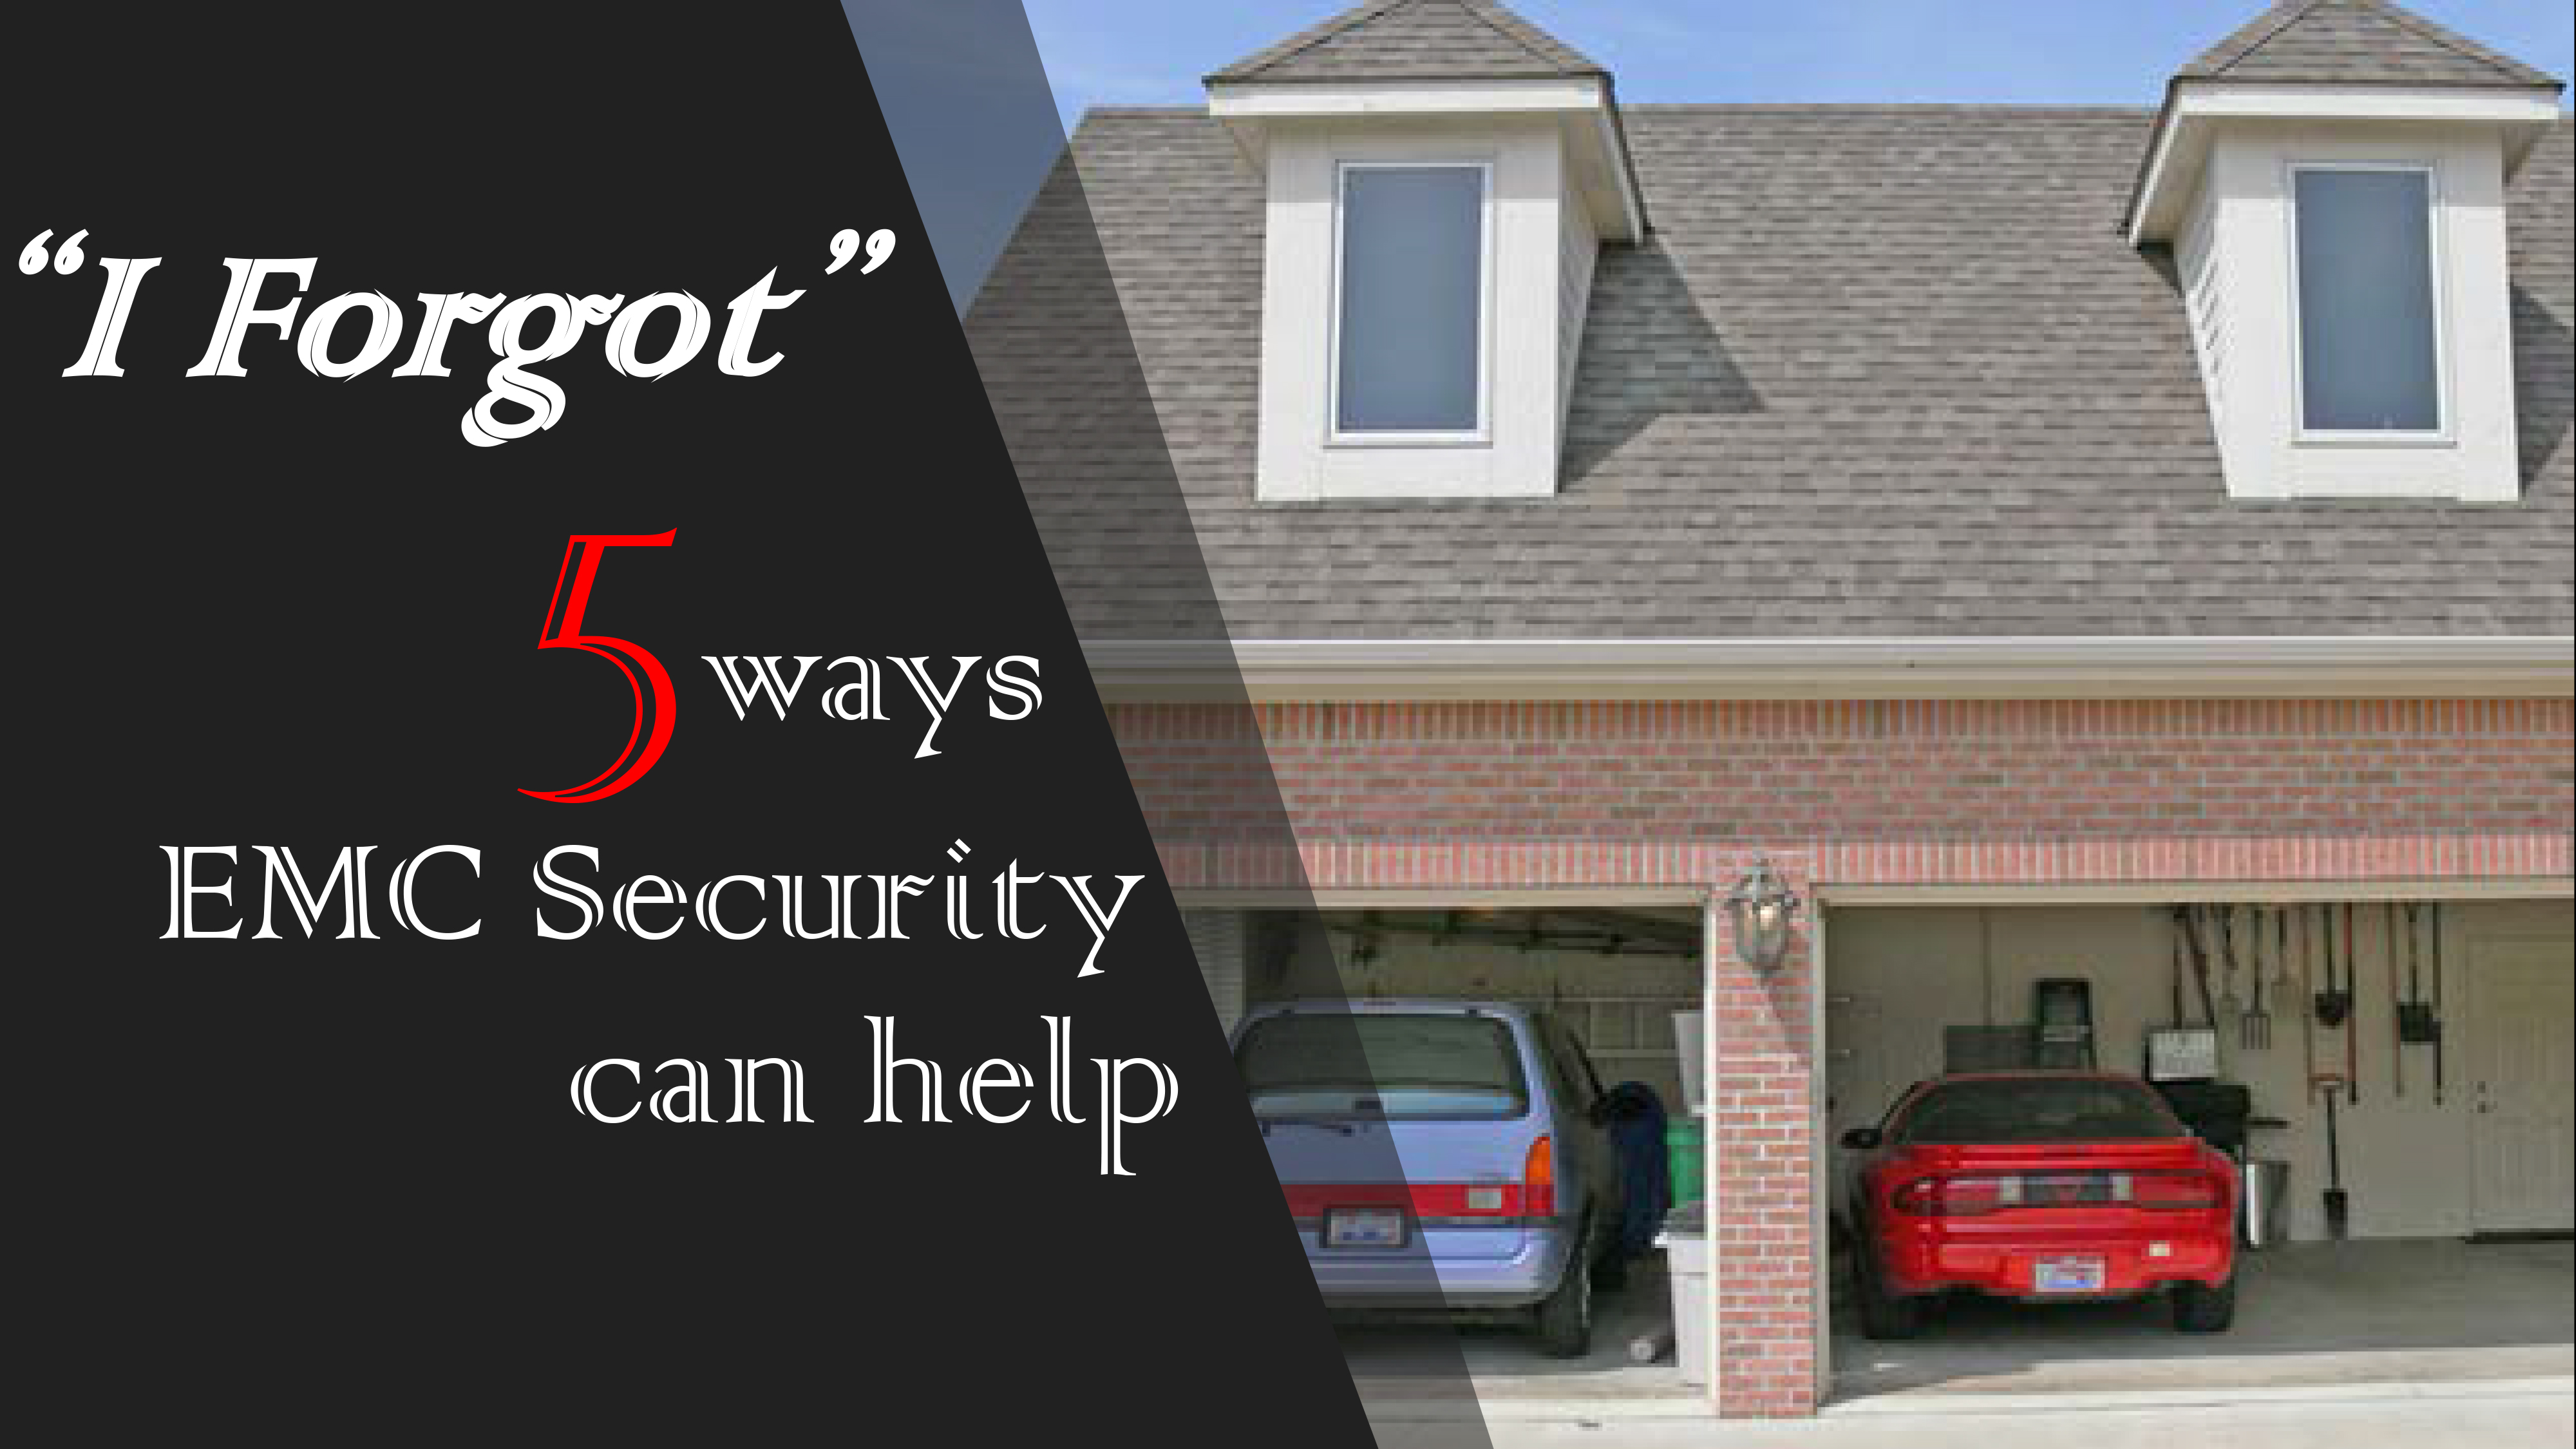 I forgot 5 ways emc security can help emc security for Emc security systems